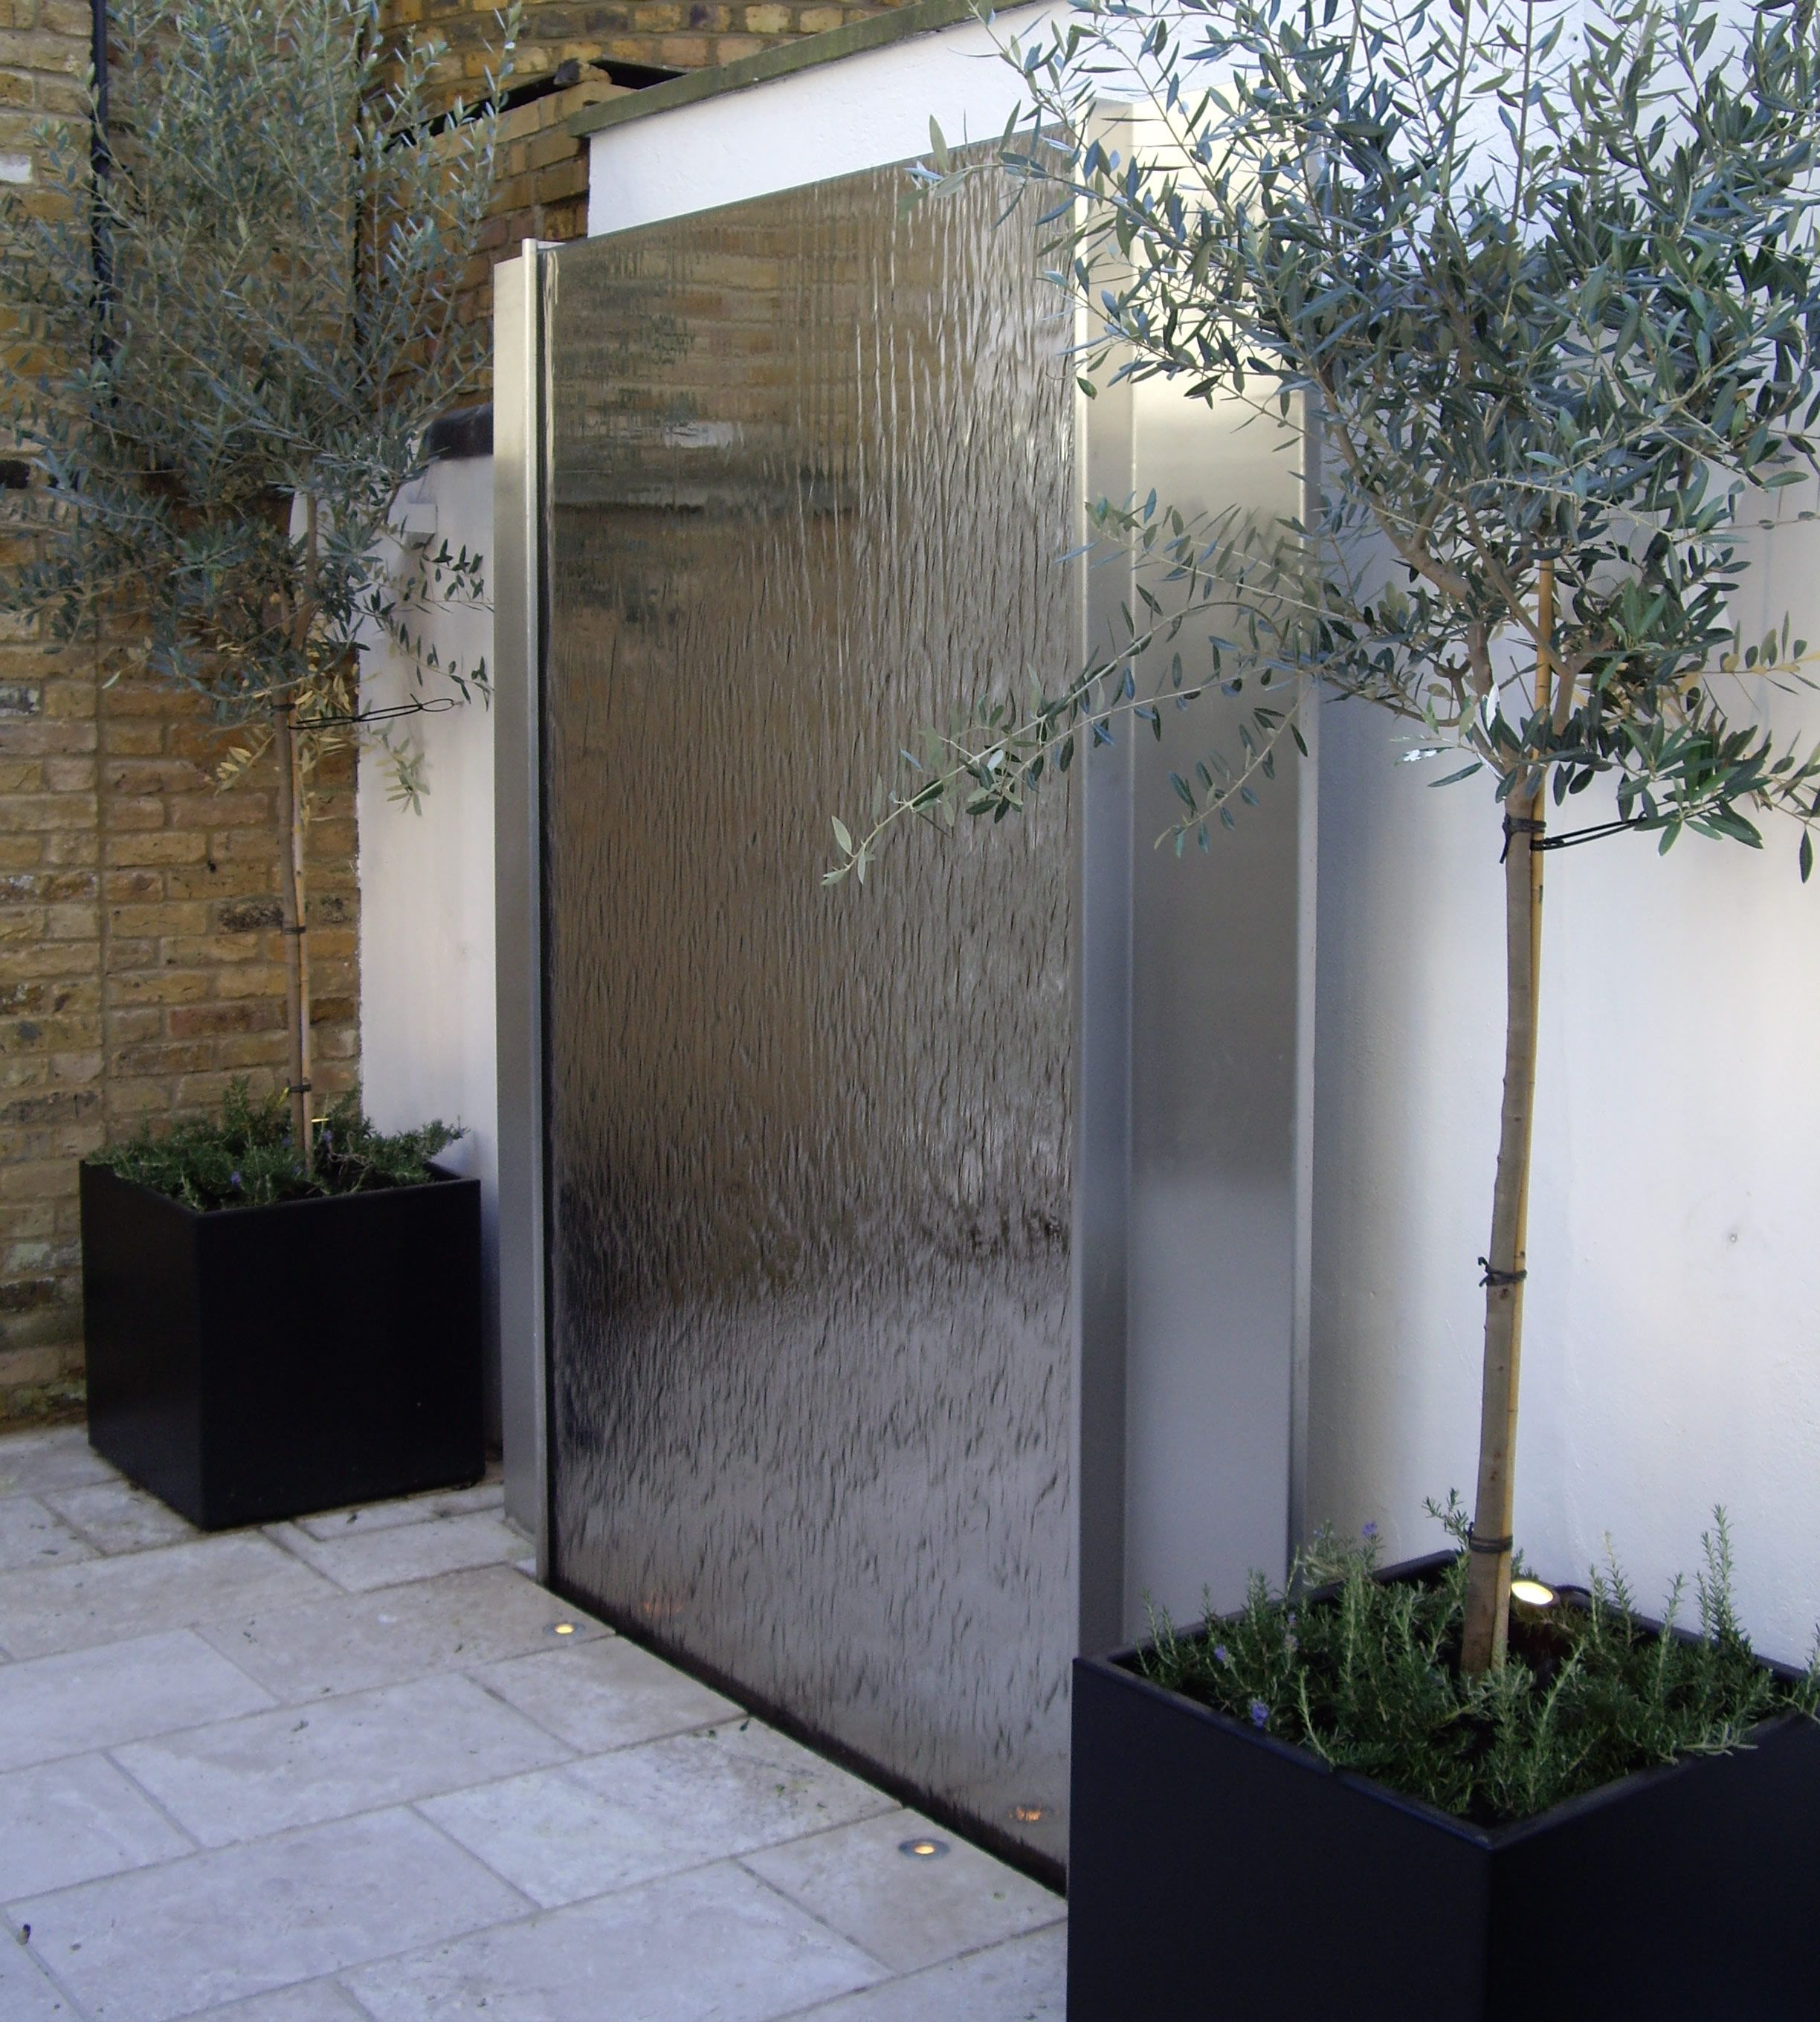 stainless steel water feature 3 | launch lab - interior wall